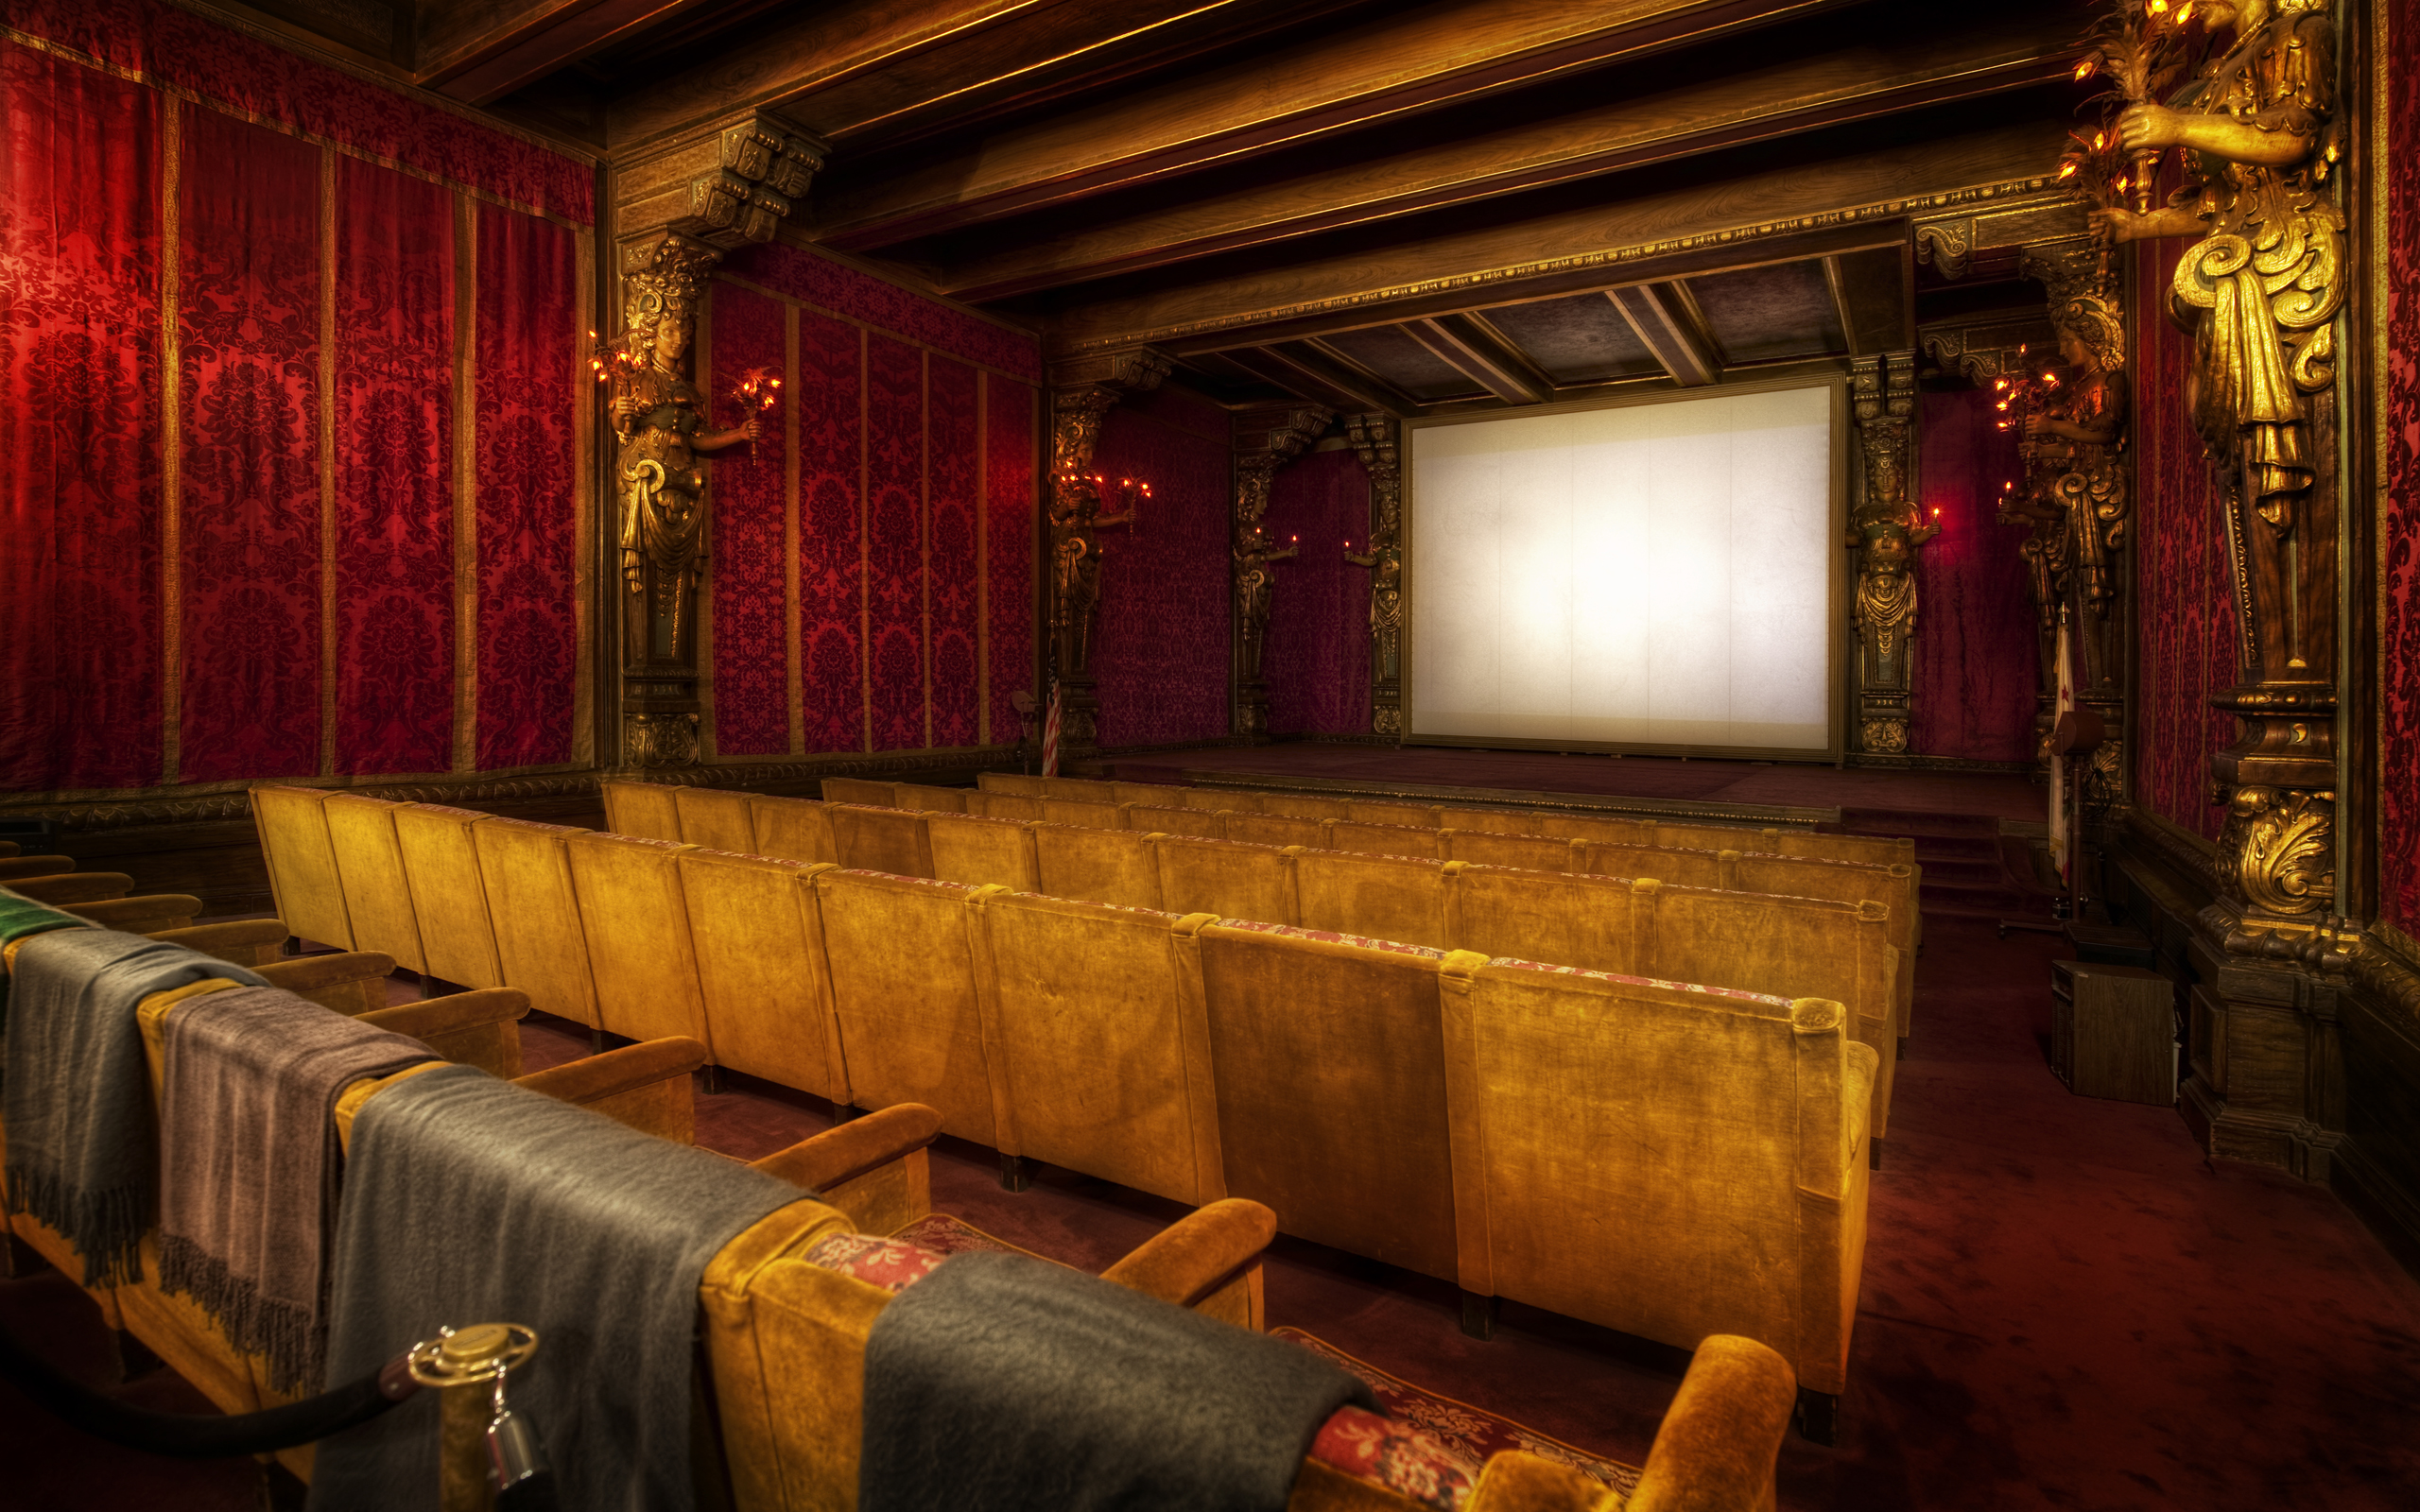 2560x1600 The movie theater at Hearst desktop wallpapers 2560x1600